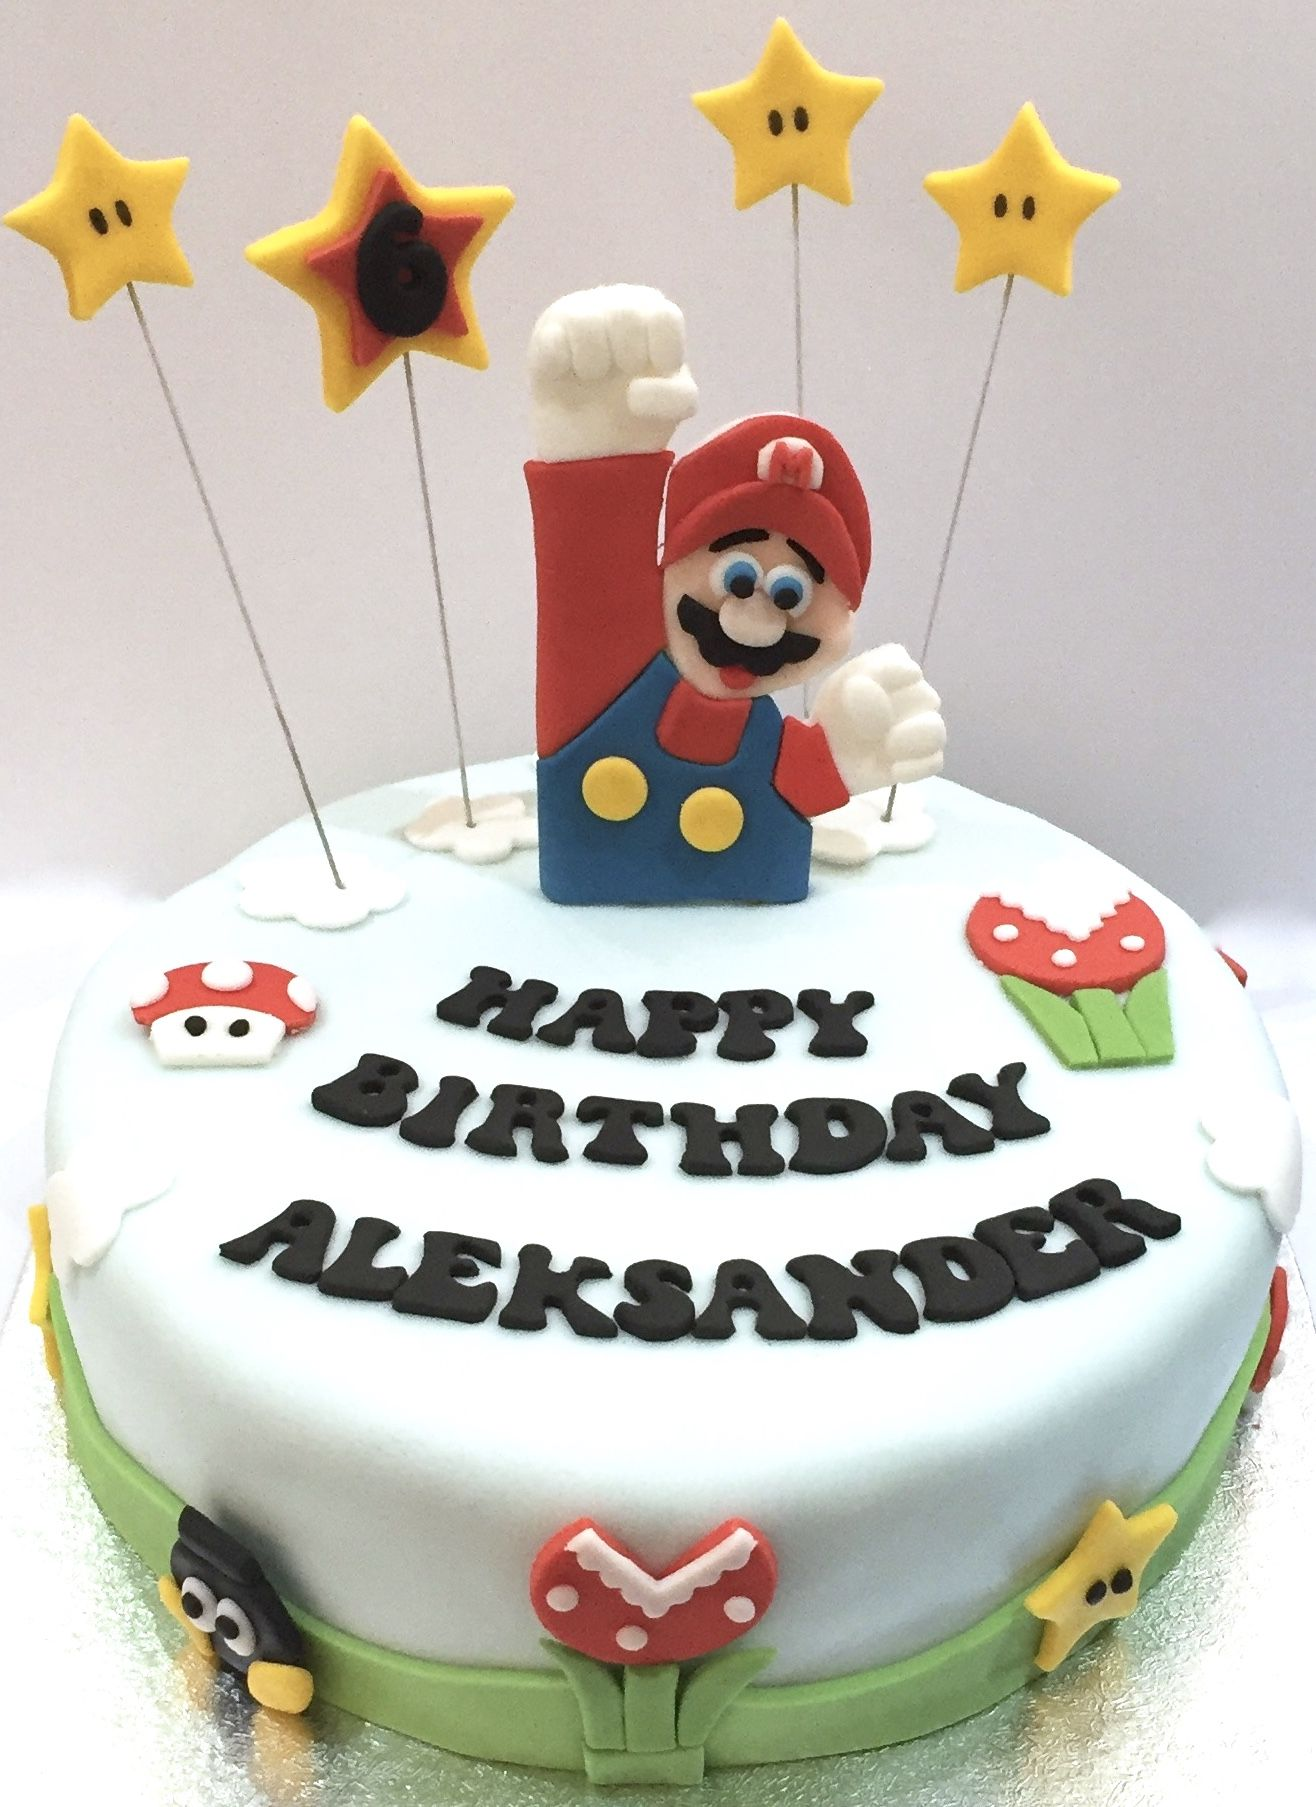 Super Mario Themed Birthday Cake Delivered To A Customer In Leek Available Buy On Acupcfulofcakecouk Customised Requests Welcomed